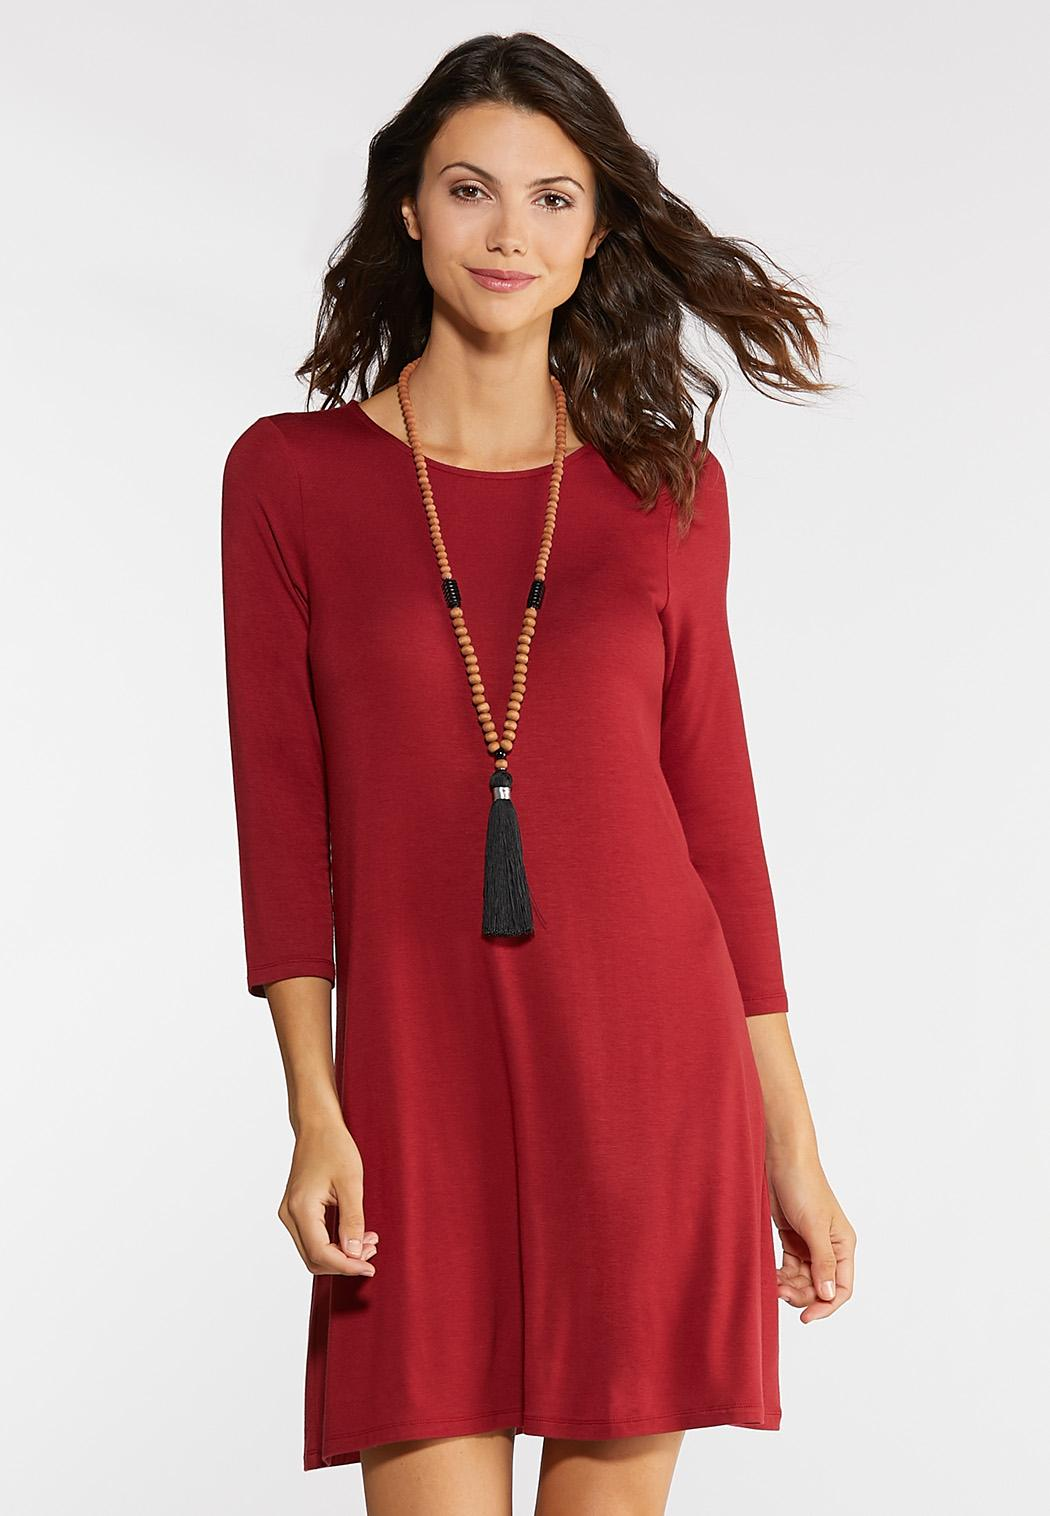 Plus Size Red Swing Dress A- Line & Amp ; Swing Cato Fashions